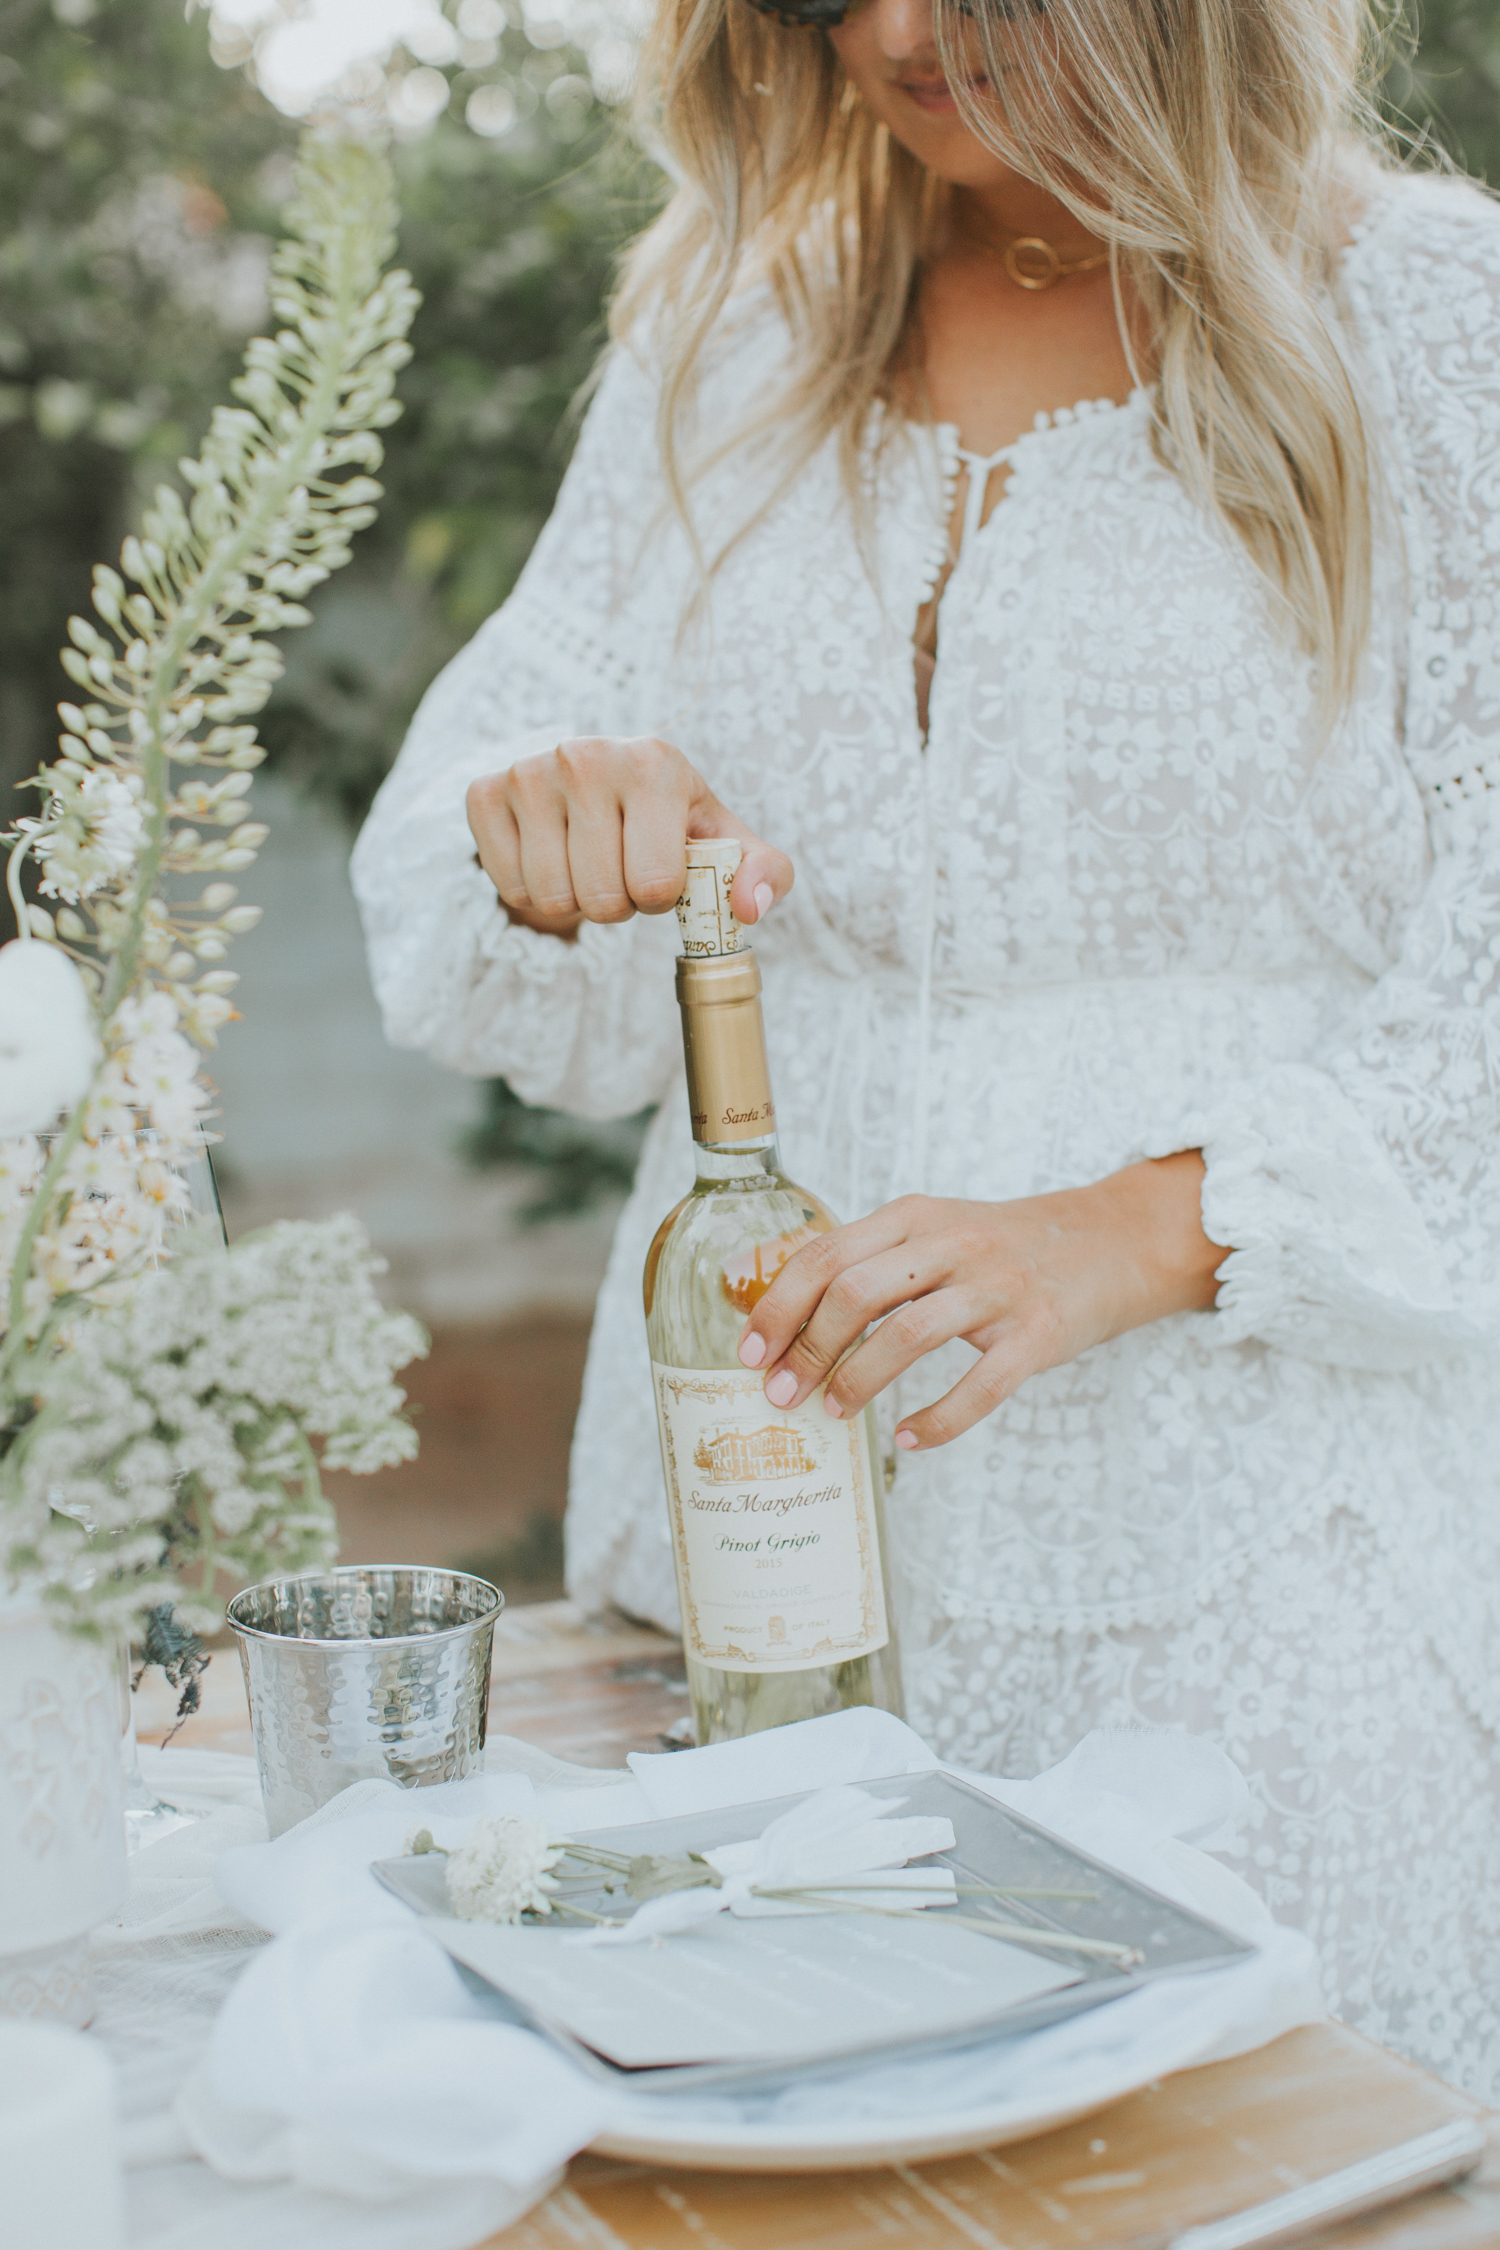 White dresses and white wine   A Fabulous Fete